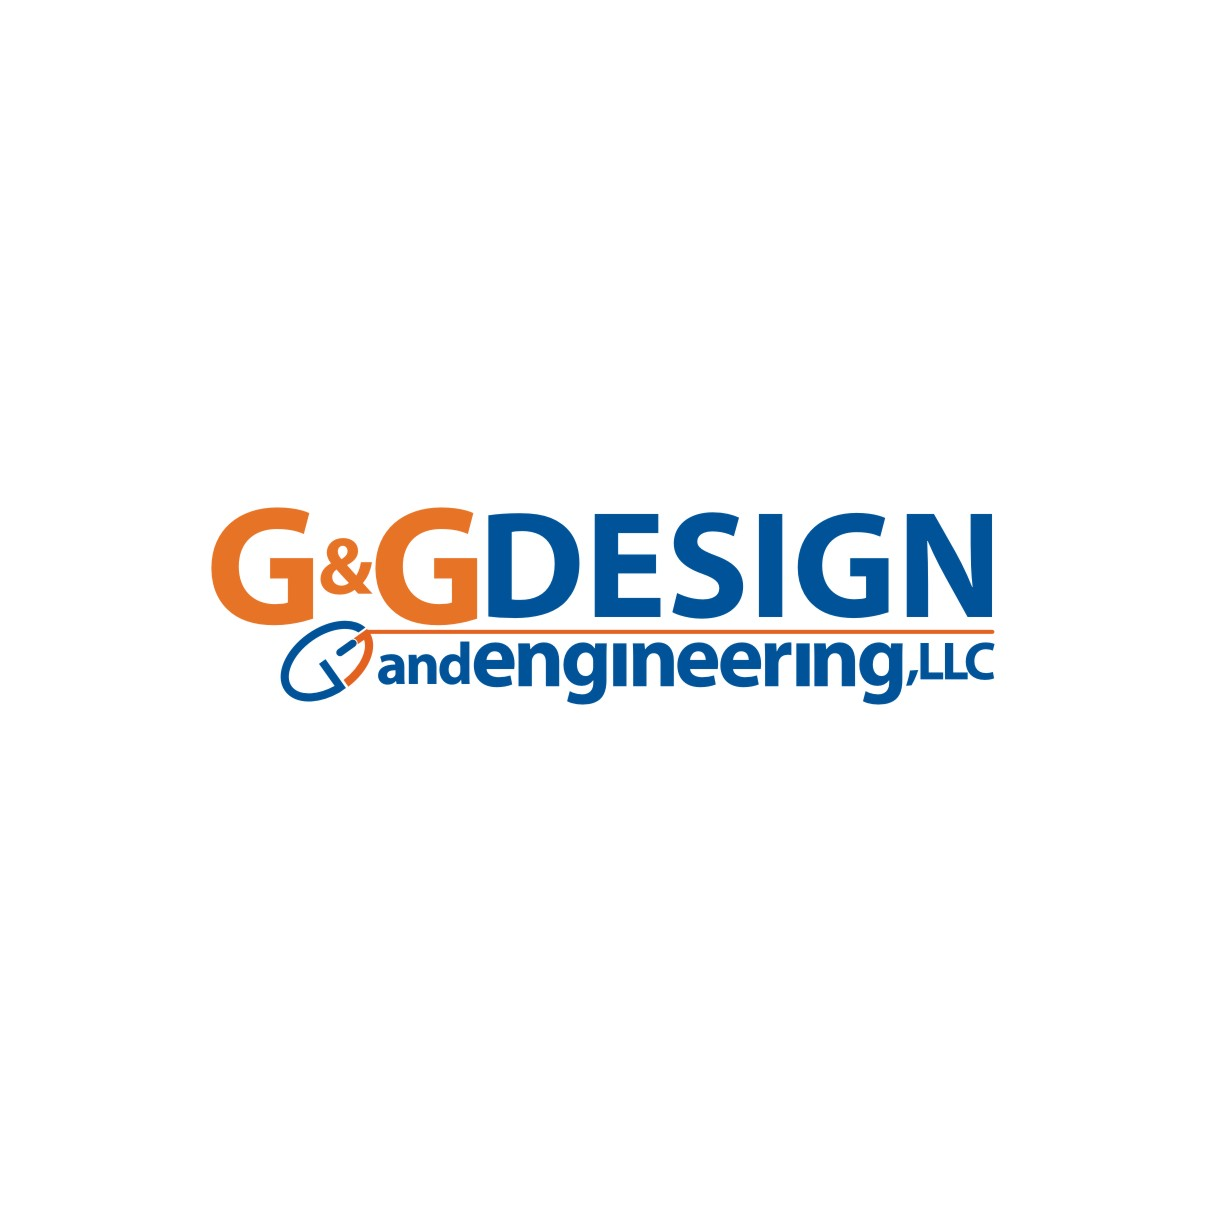 Logo Design by jalal - Entry No. 87 in the Logo Design Contest Creative Logo Design for G&G Design and Engineering, LLC.